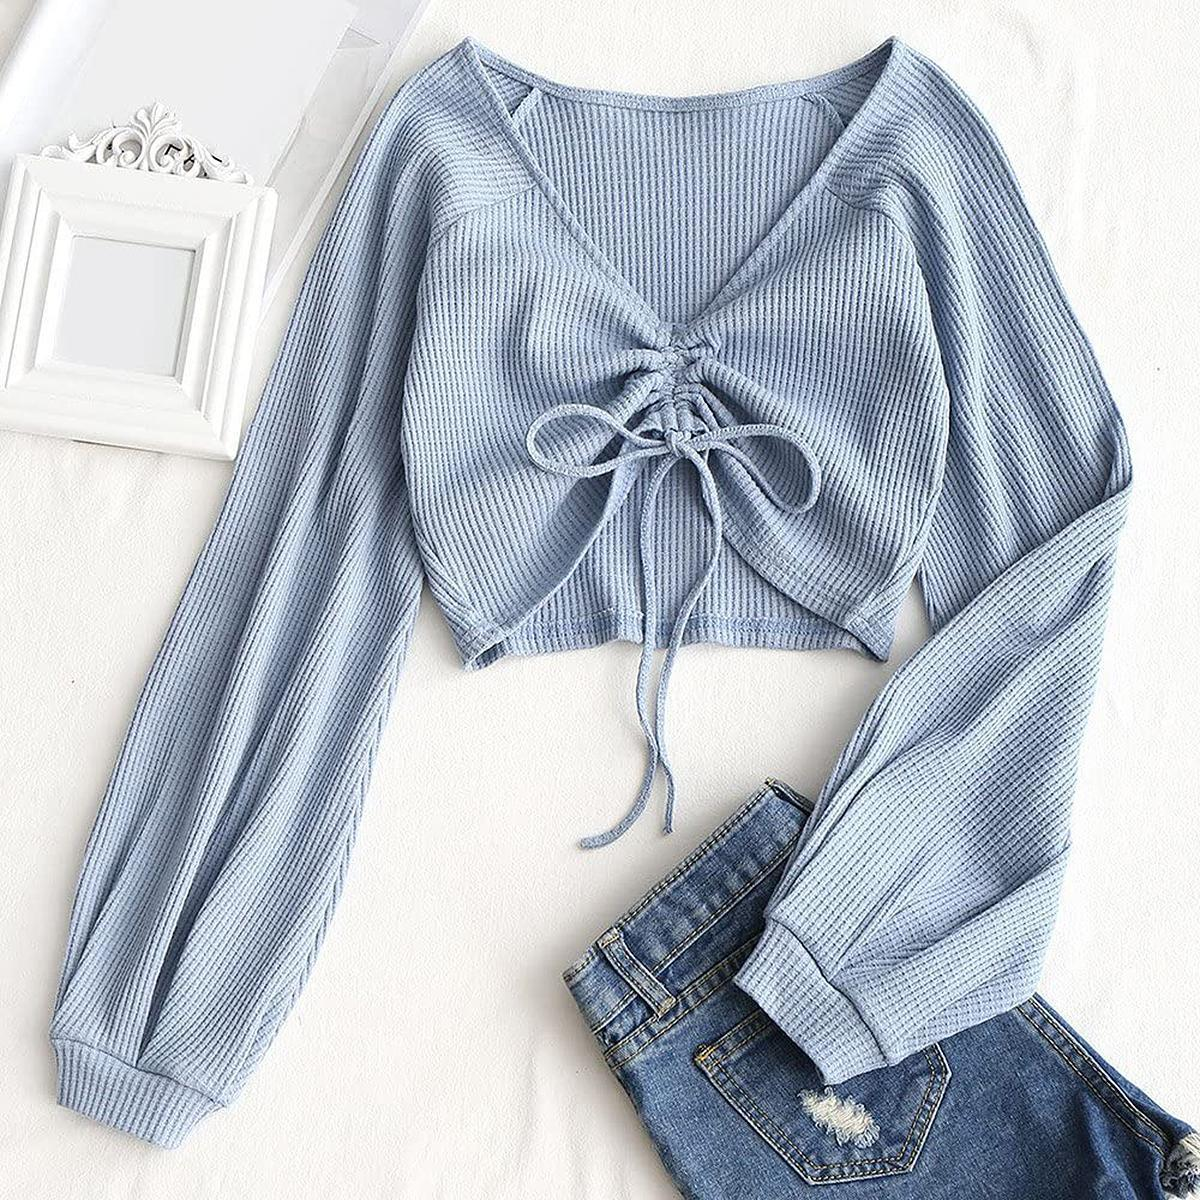 ZAFUL Long-Sleeve Knot Front Crop Top